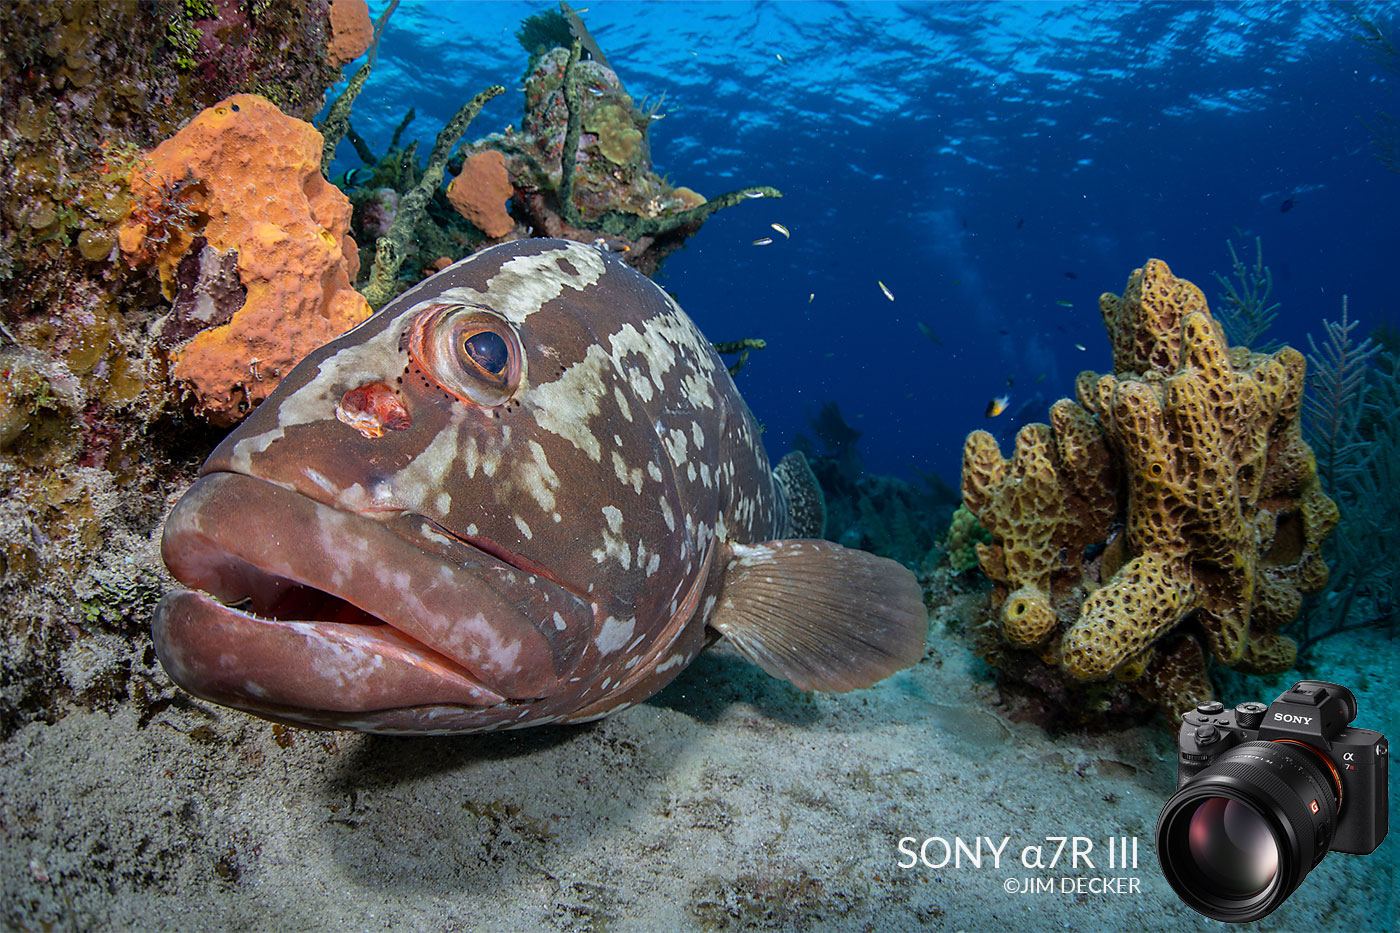 Sony a7R III Underwater Camera Review - Underwater Photography